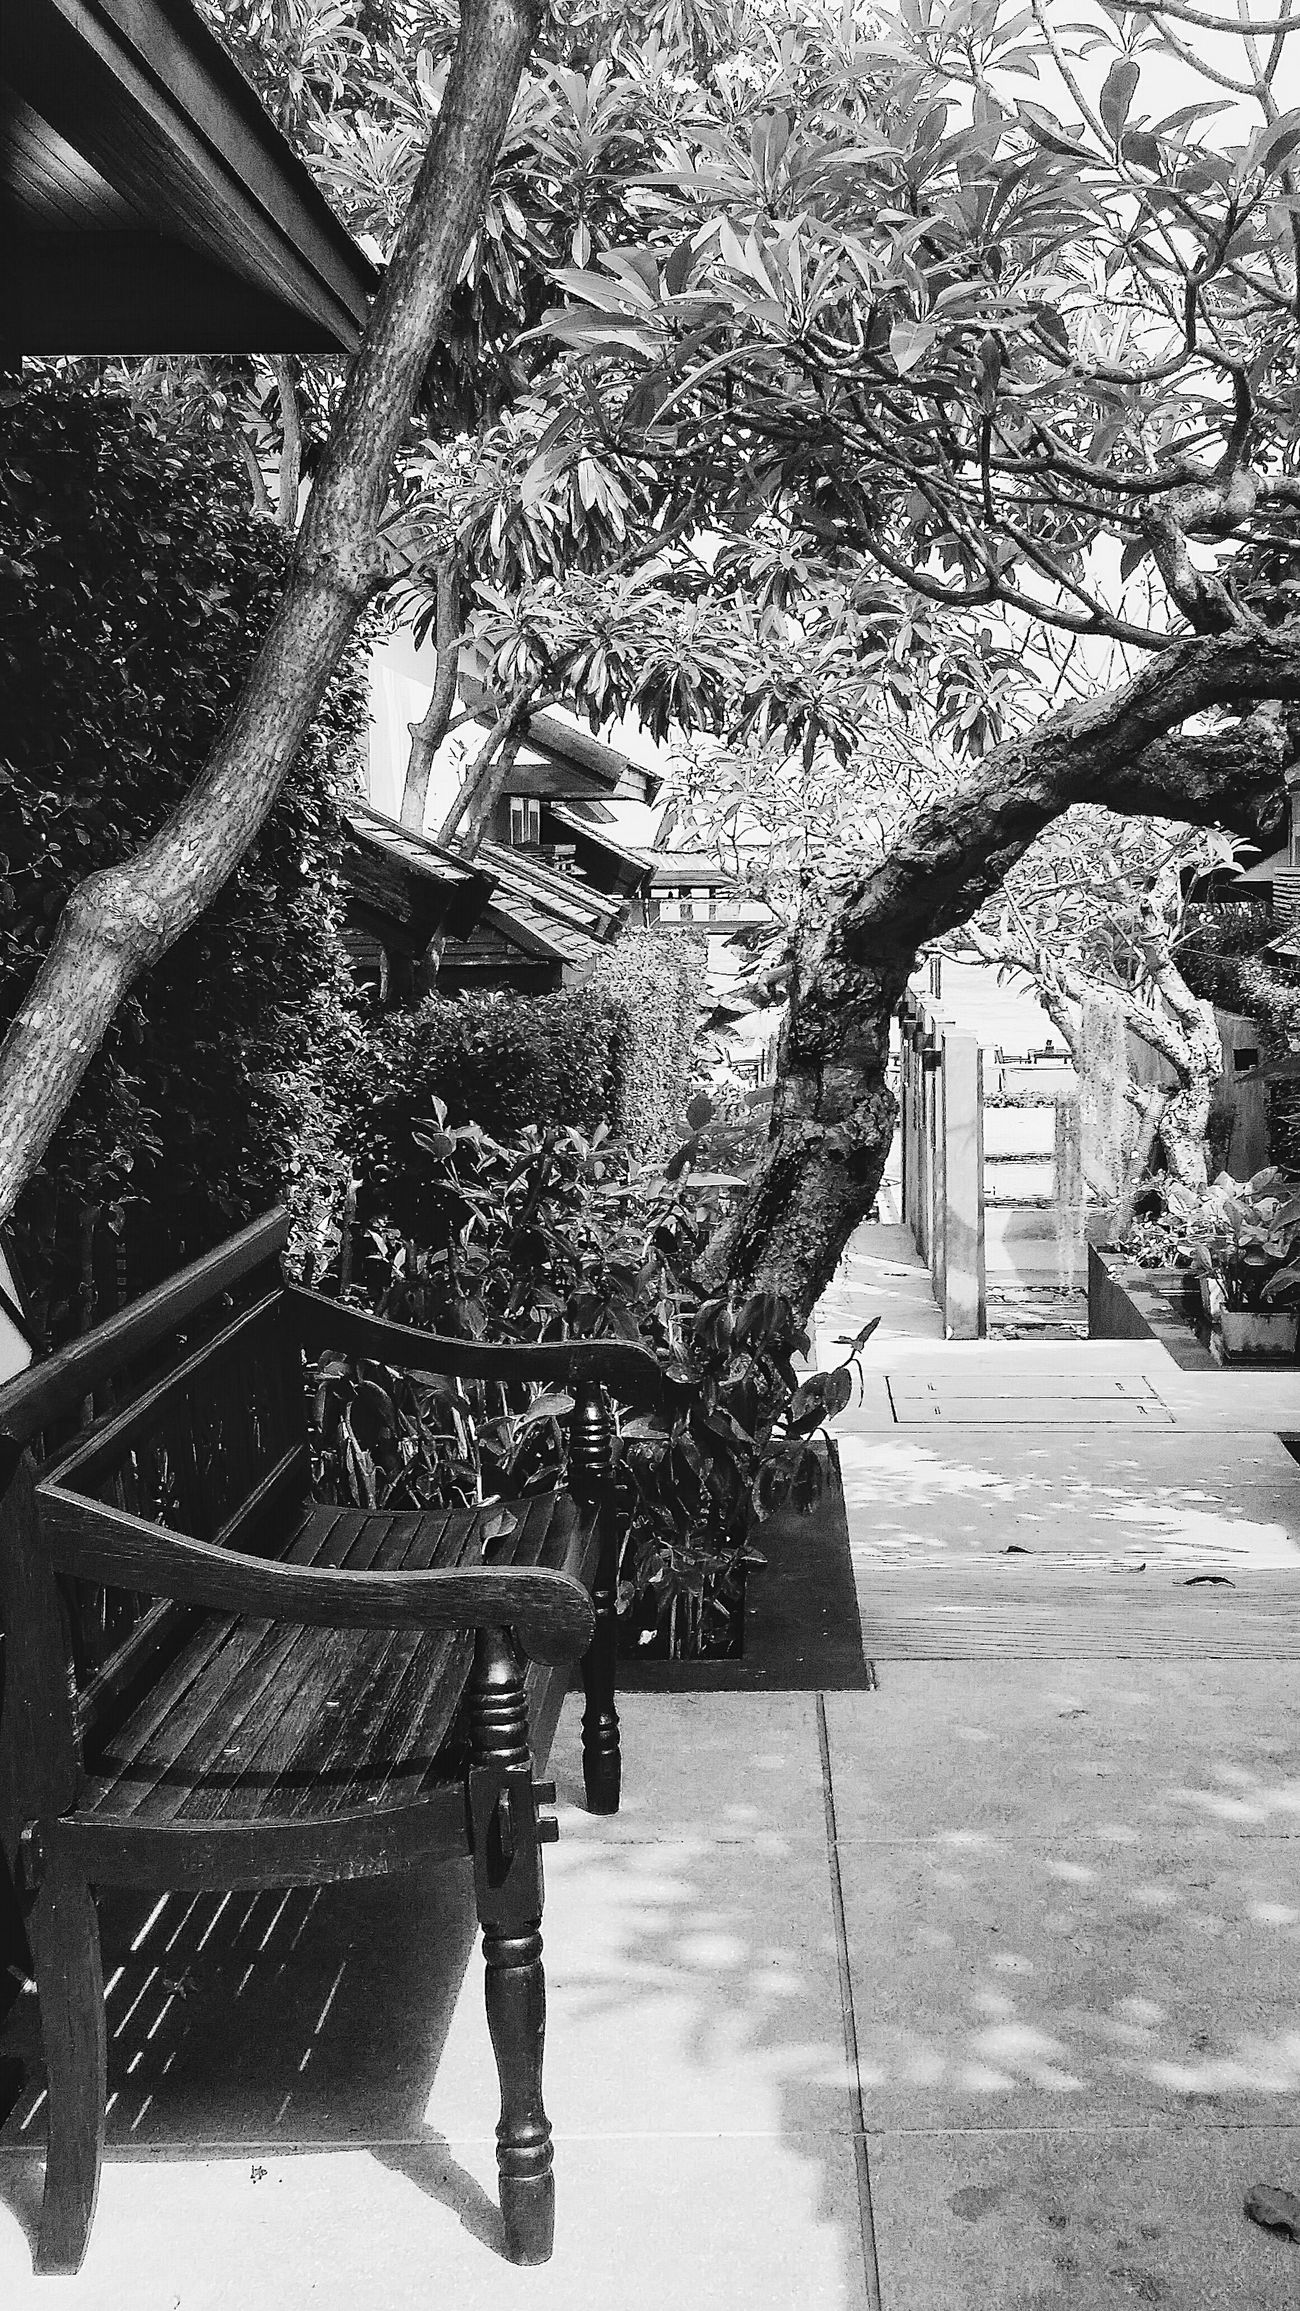 Bench Maenam Trees Villas Nature Naturephotography Naturecollection Naturelovers Koh Samui Thailand Travelphotography Eyeemcollection Eyeemphotography Eyeemkohsamui Eyeemthailand Bnw_kohsamui Bnw_thailand Bnw_travel Bnw_world Bnw_captures